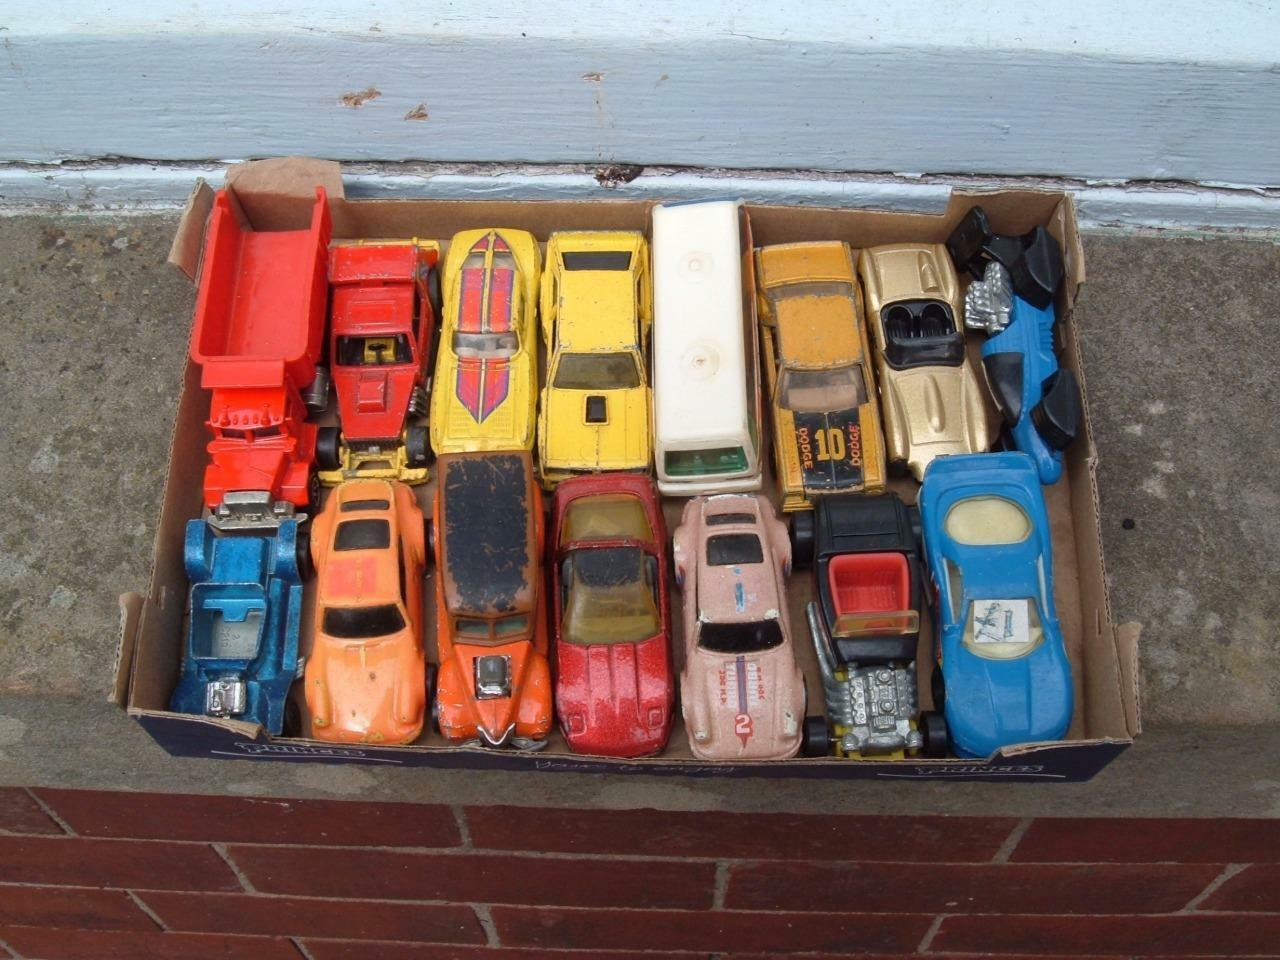 A JOB LOT OF 15 HOT WHEELS CARS ETC IN USED CONDITION VINTAGE C PICS